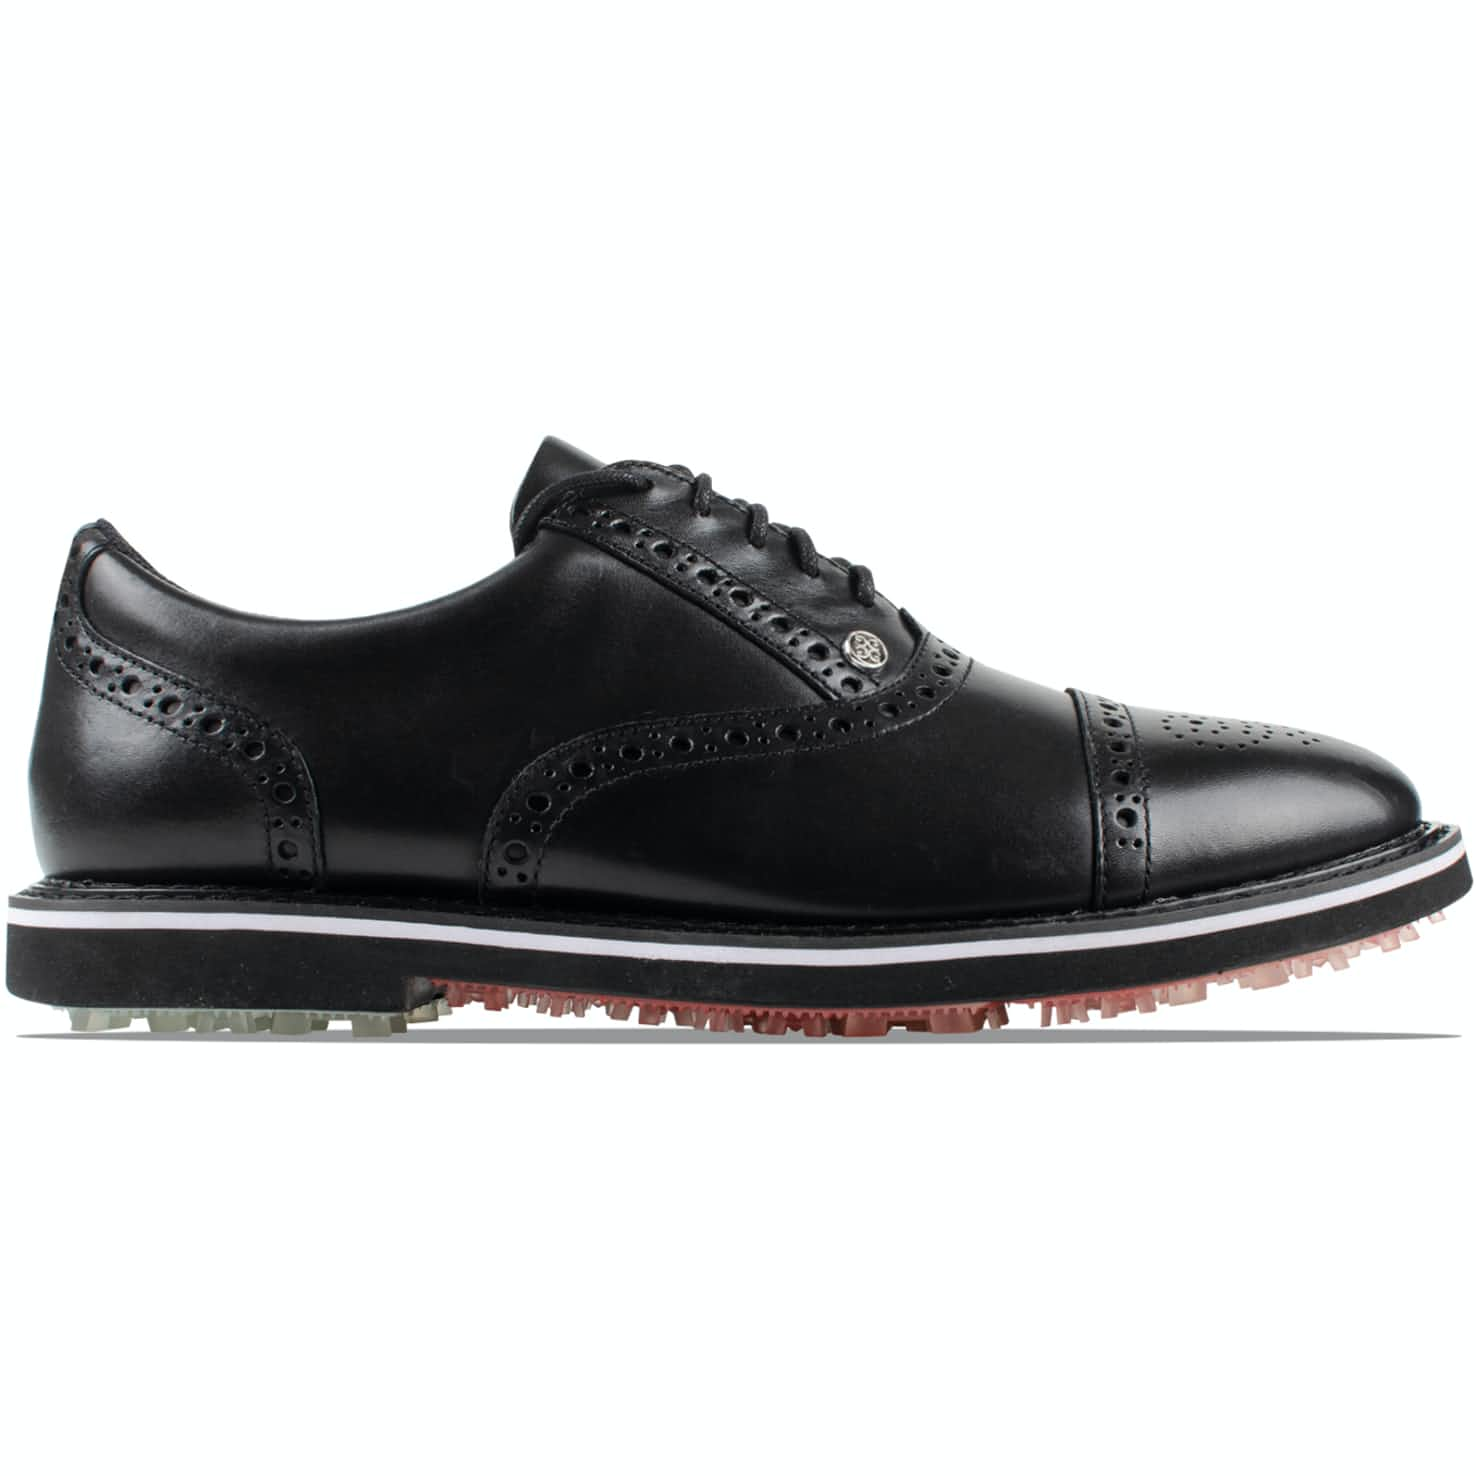 G/FORE Brogue Gallivanter Onyx - 2019